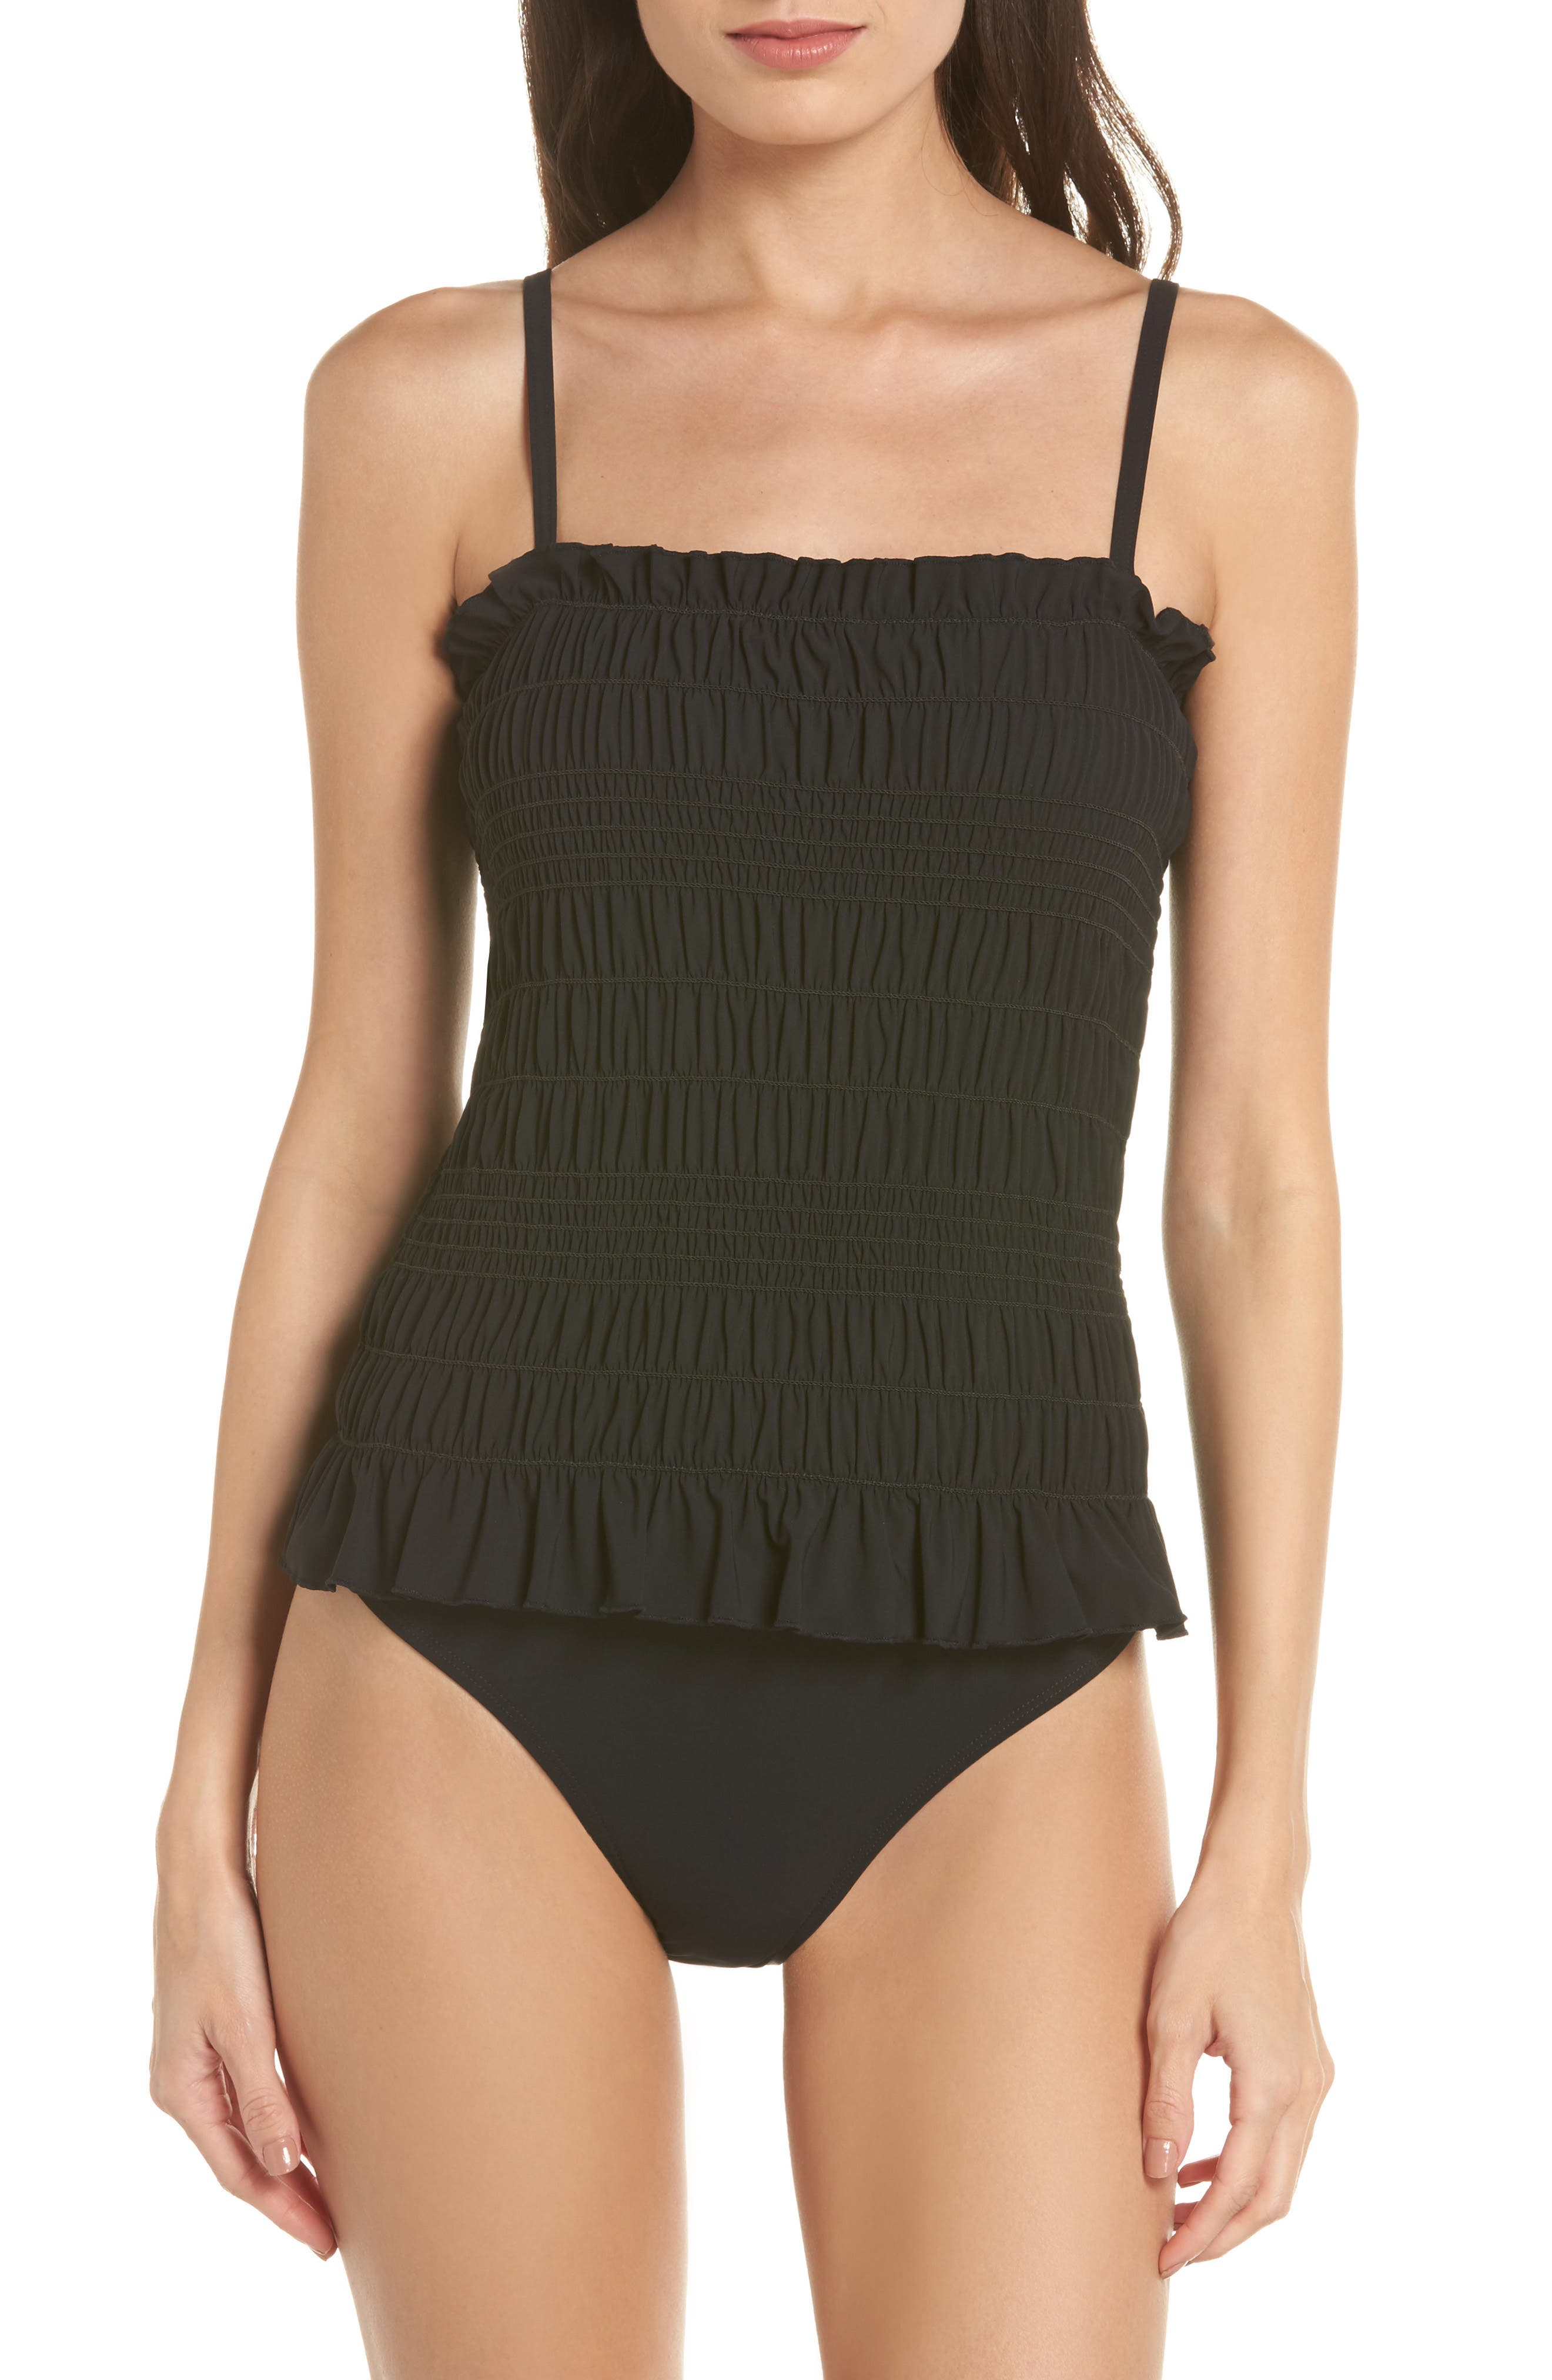 Costa Smocked One-Piece Swimsuit,                             Alternate thumbnail 4, color,                             009